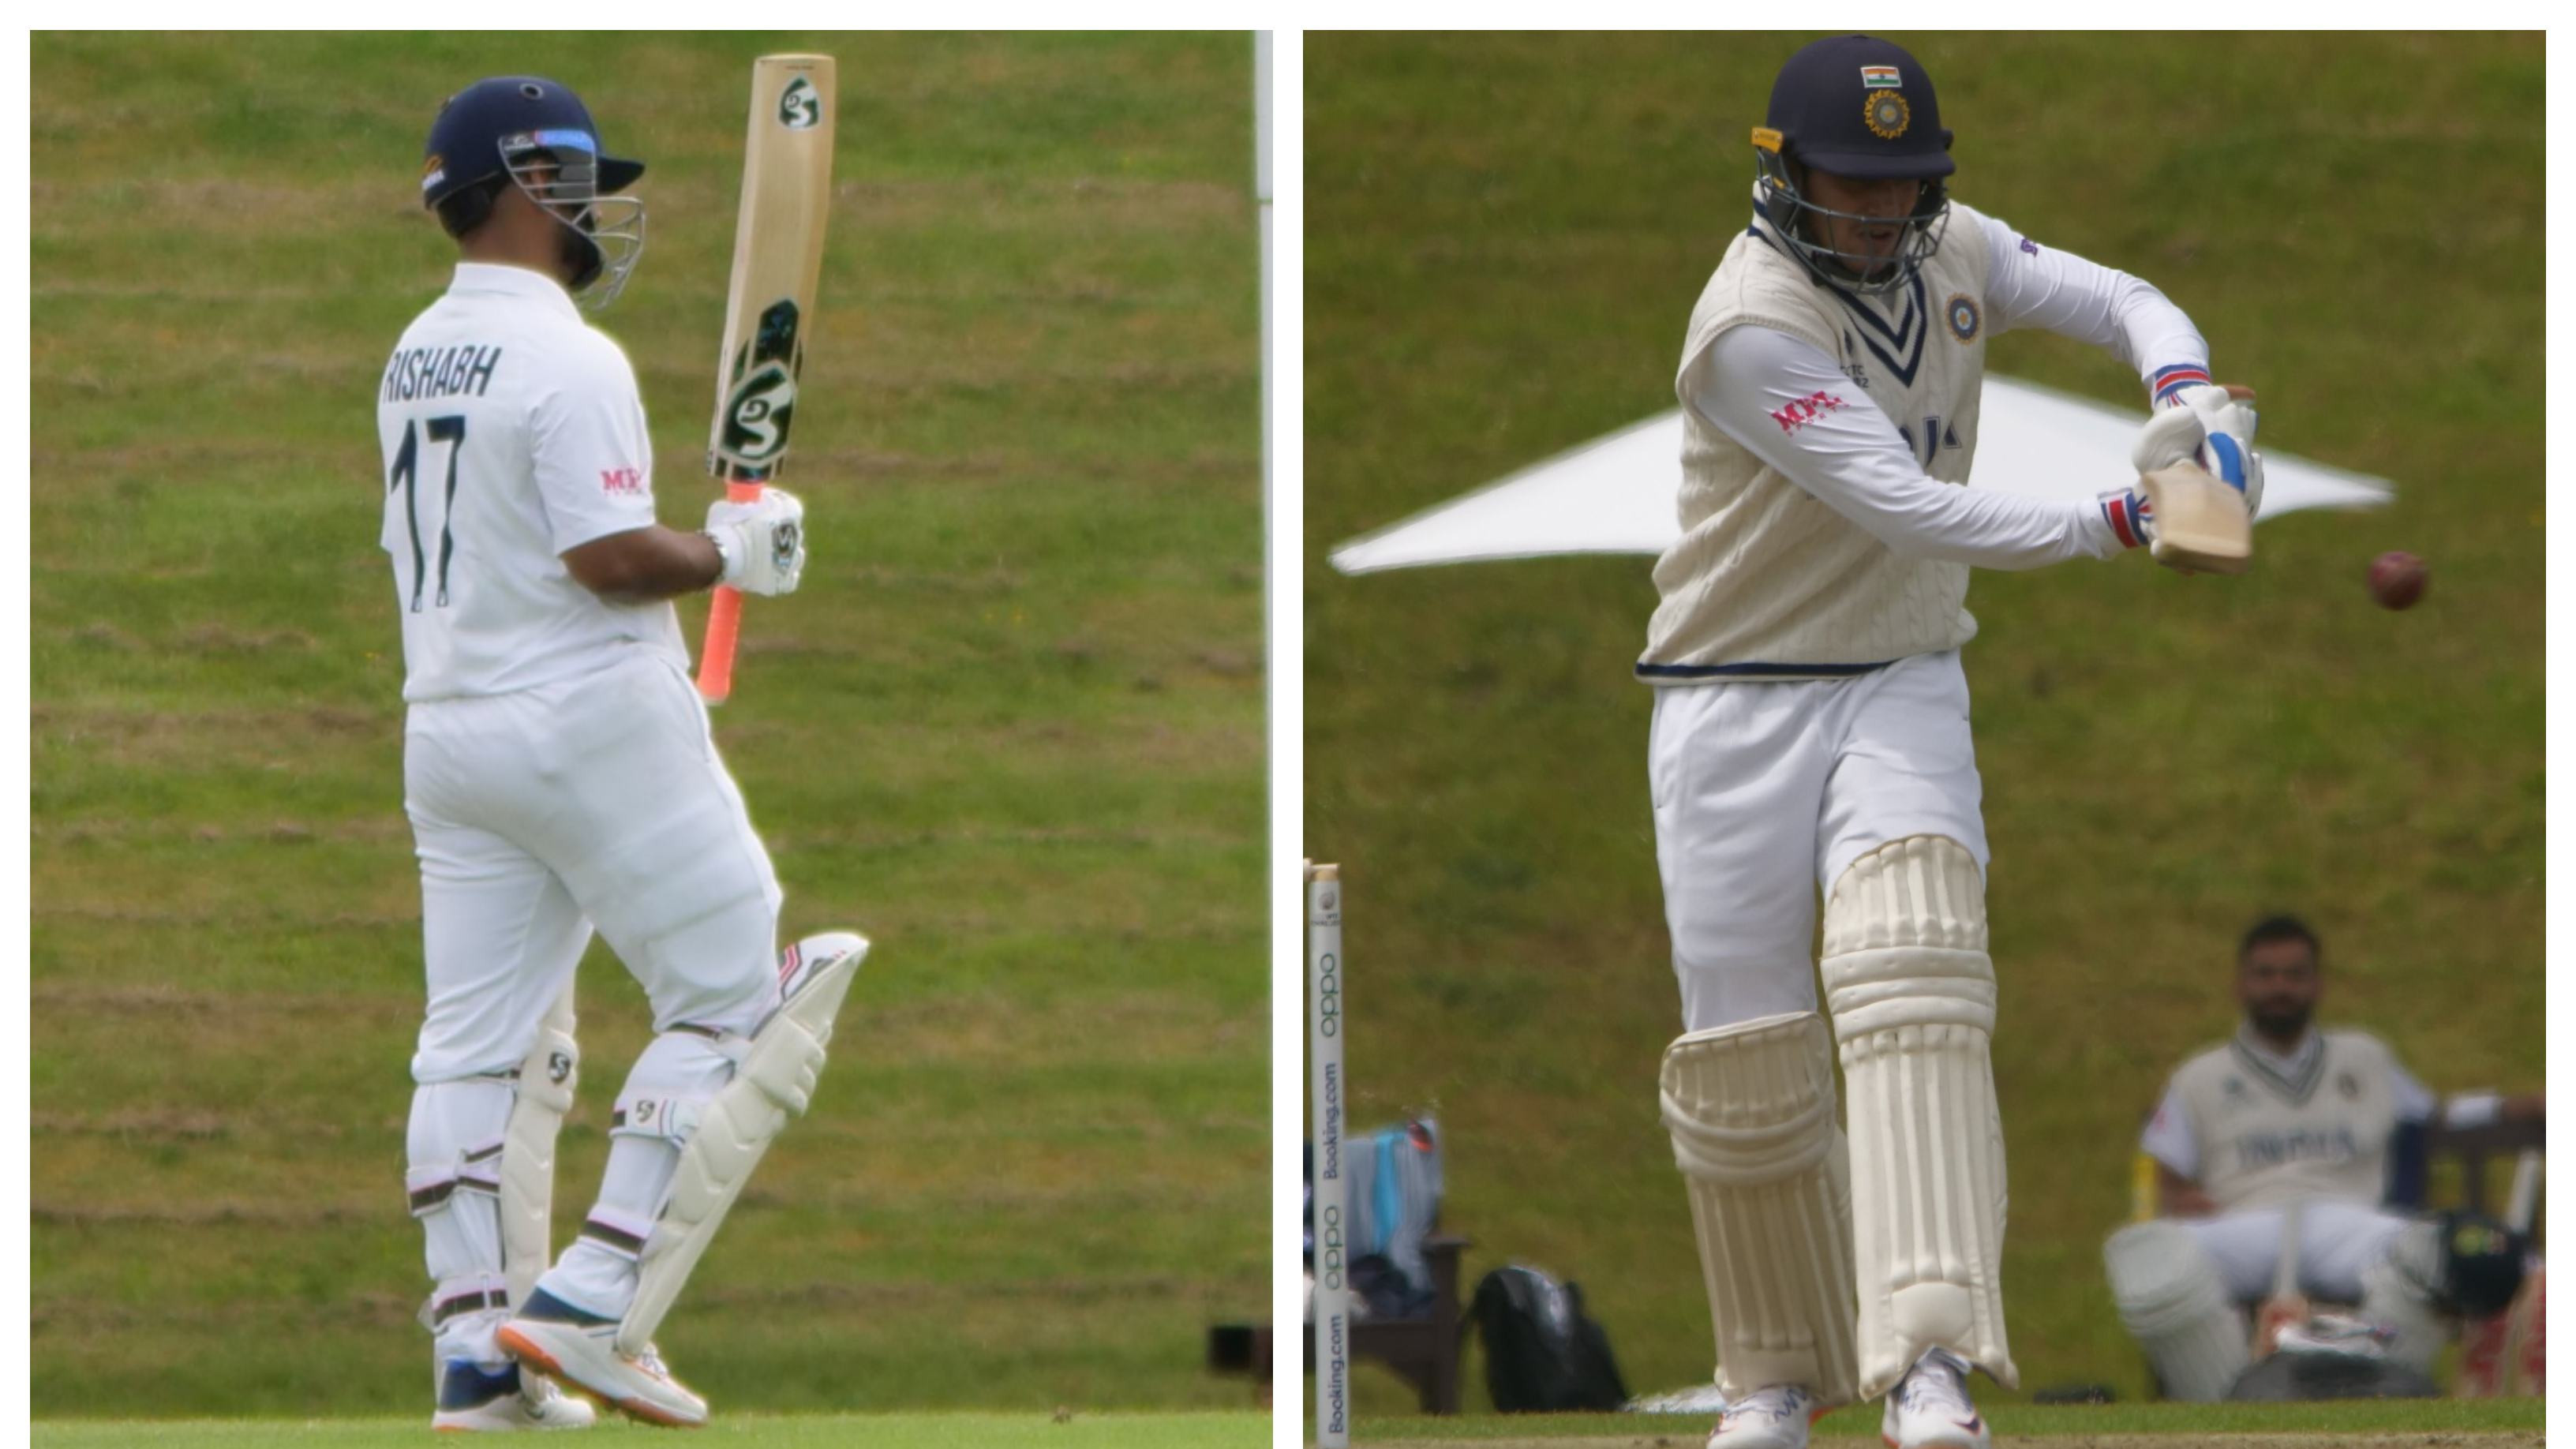 WTC 2021 Final: Rishabh Pant, Shubman Gill shine in intra-squad match on Day 2, BCCI shares update